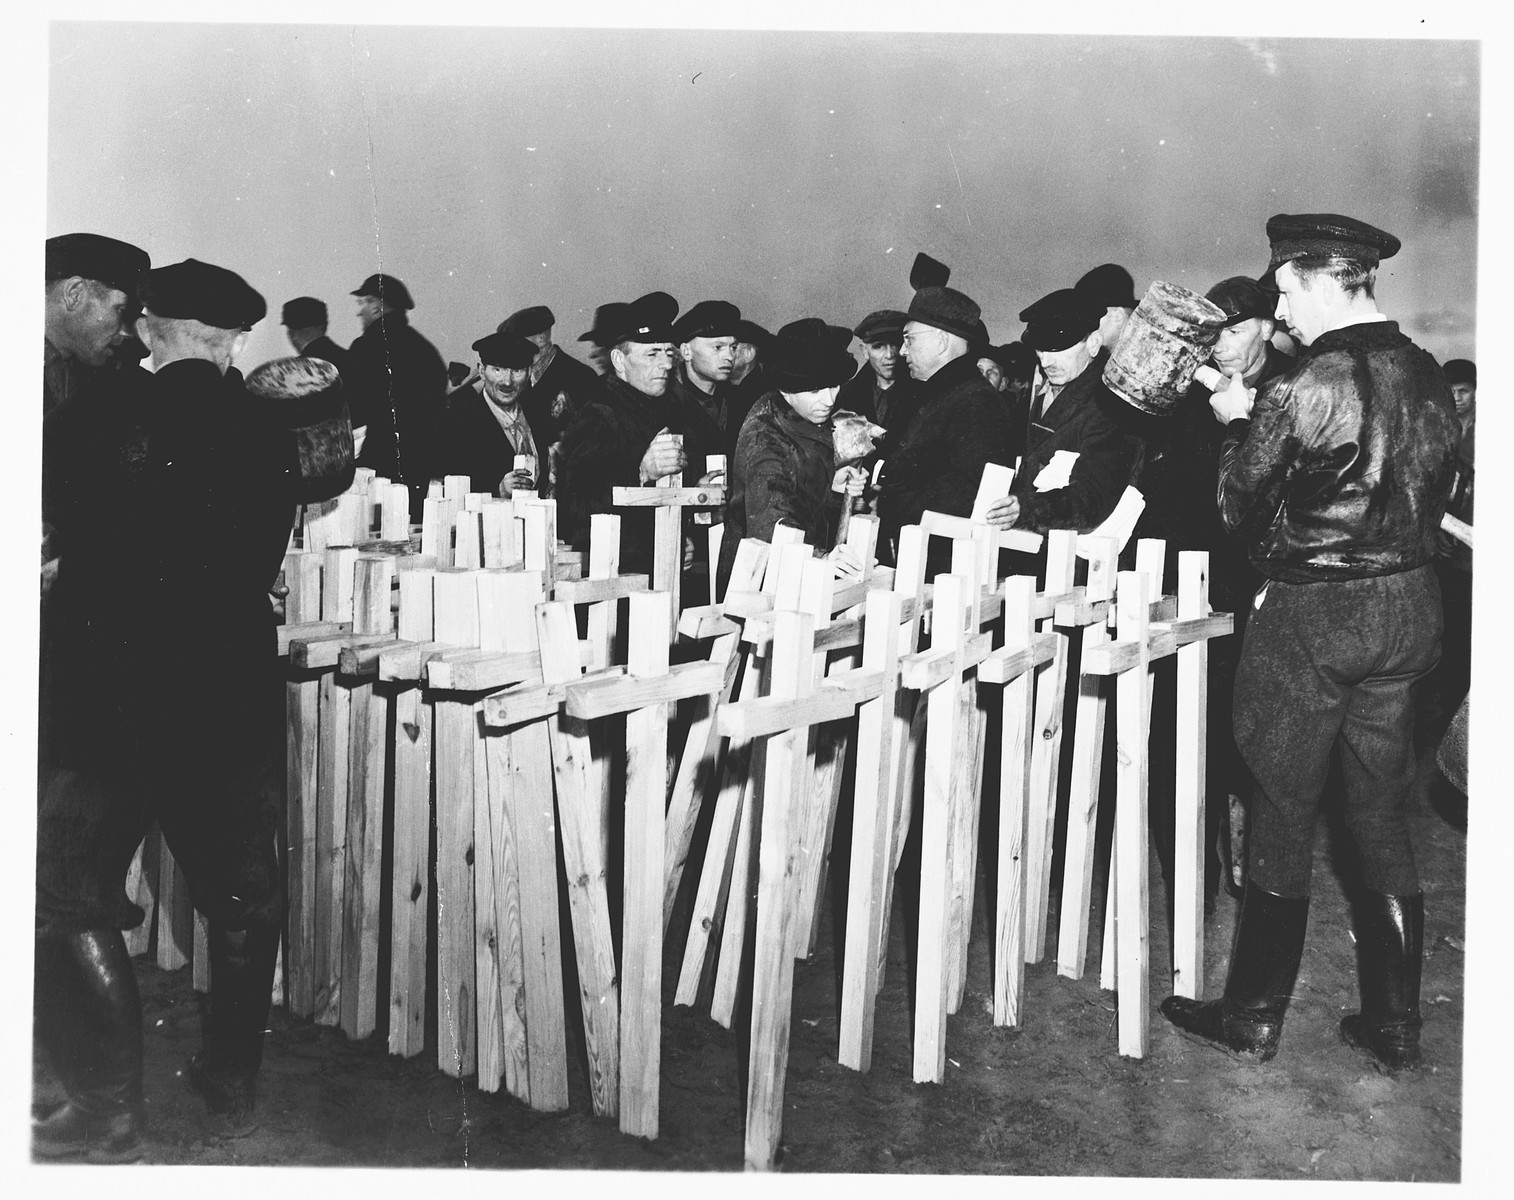 German civilians place wooden crosses beside the gravesite where concentration camp prisoners, who were killed by the SS in a barn just outside Gardelegen, will be interred.